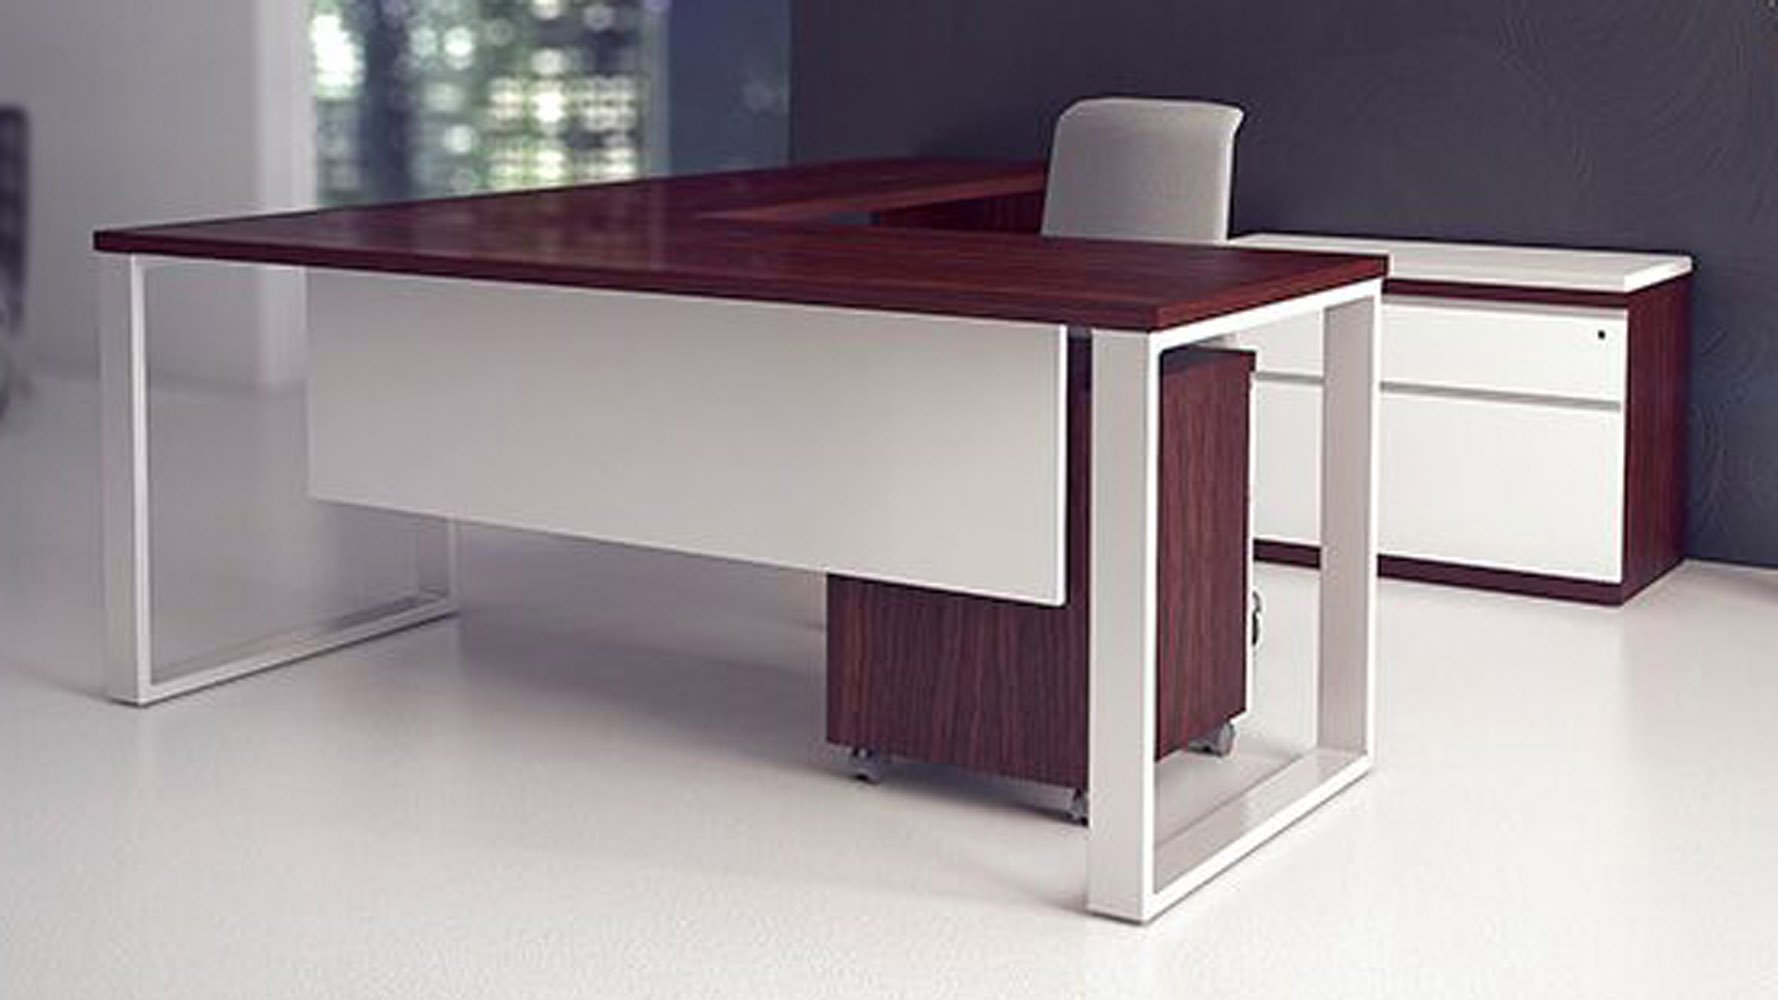 Modern Office Desk: Modern AT Two L-Shaped Desk - Biedermeier Cherry